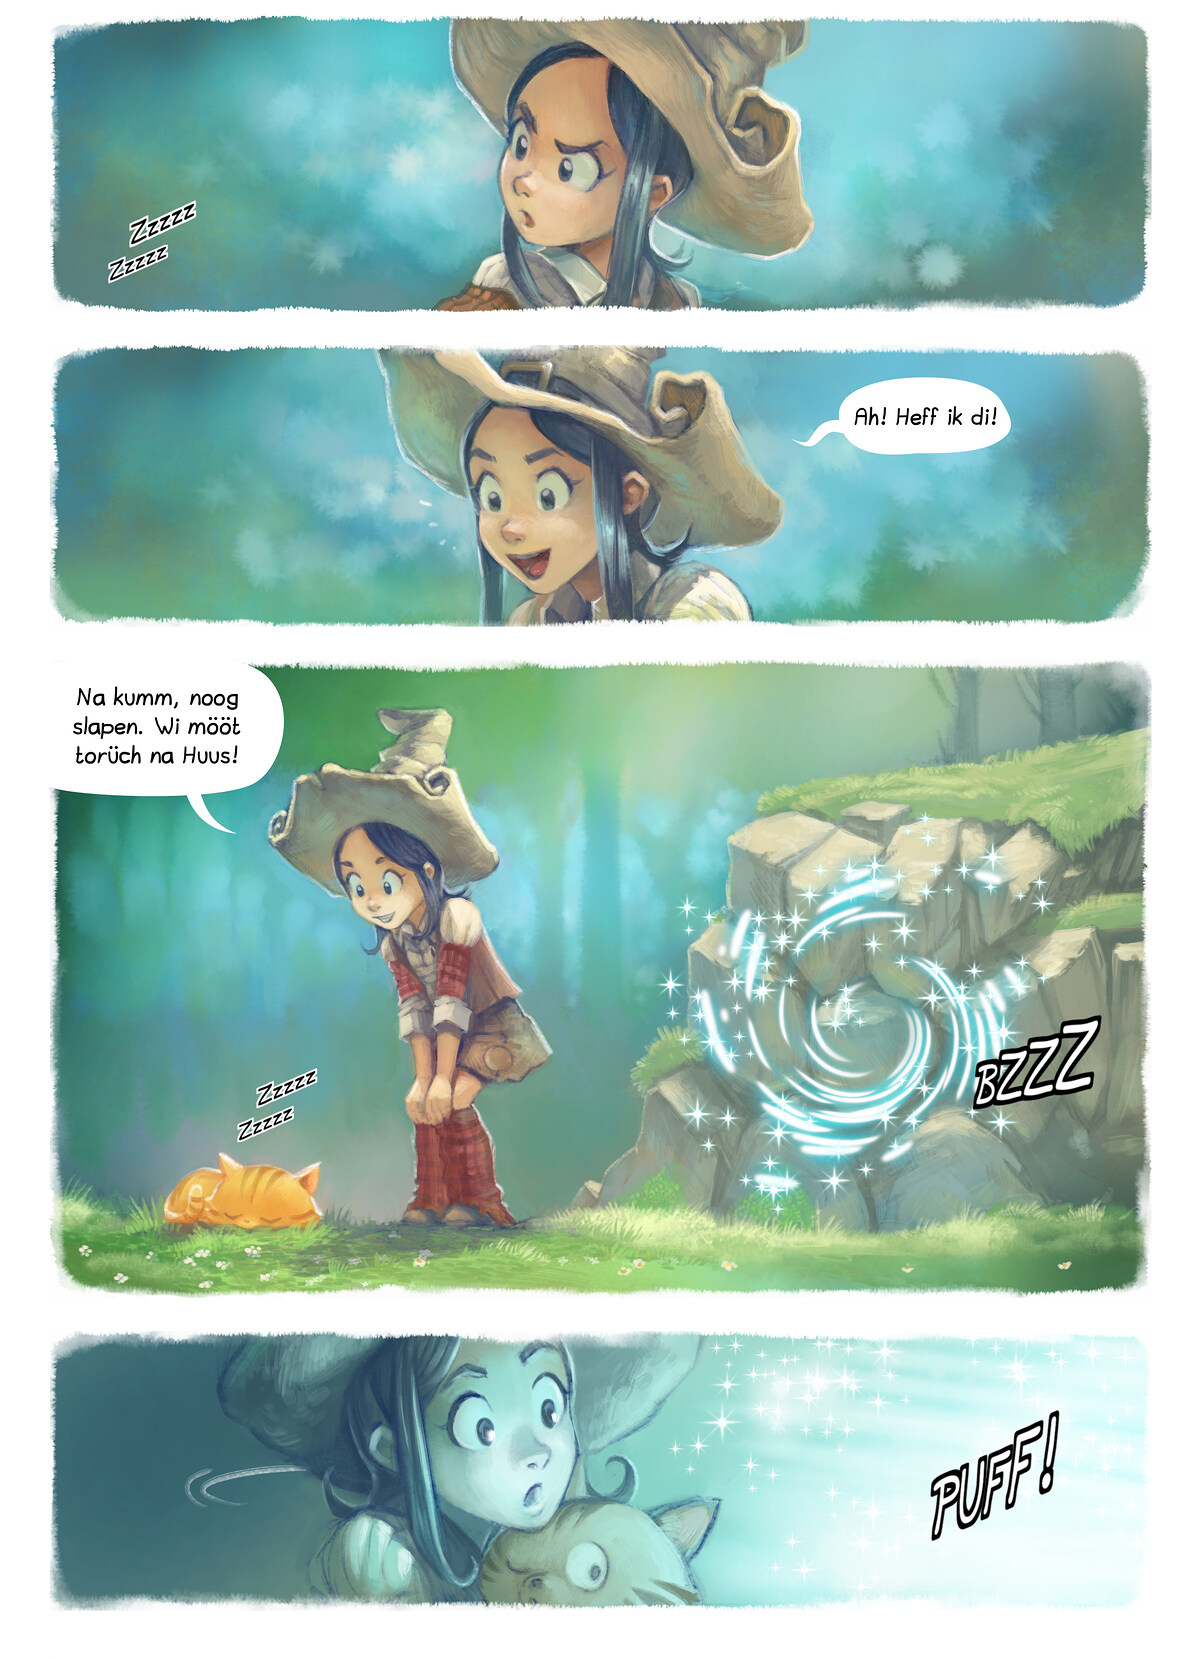 A webcomic page of Pepper&Carrot, Folg 7 [ns], Siet 2